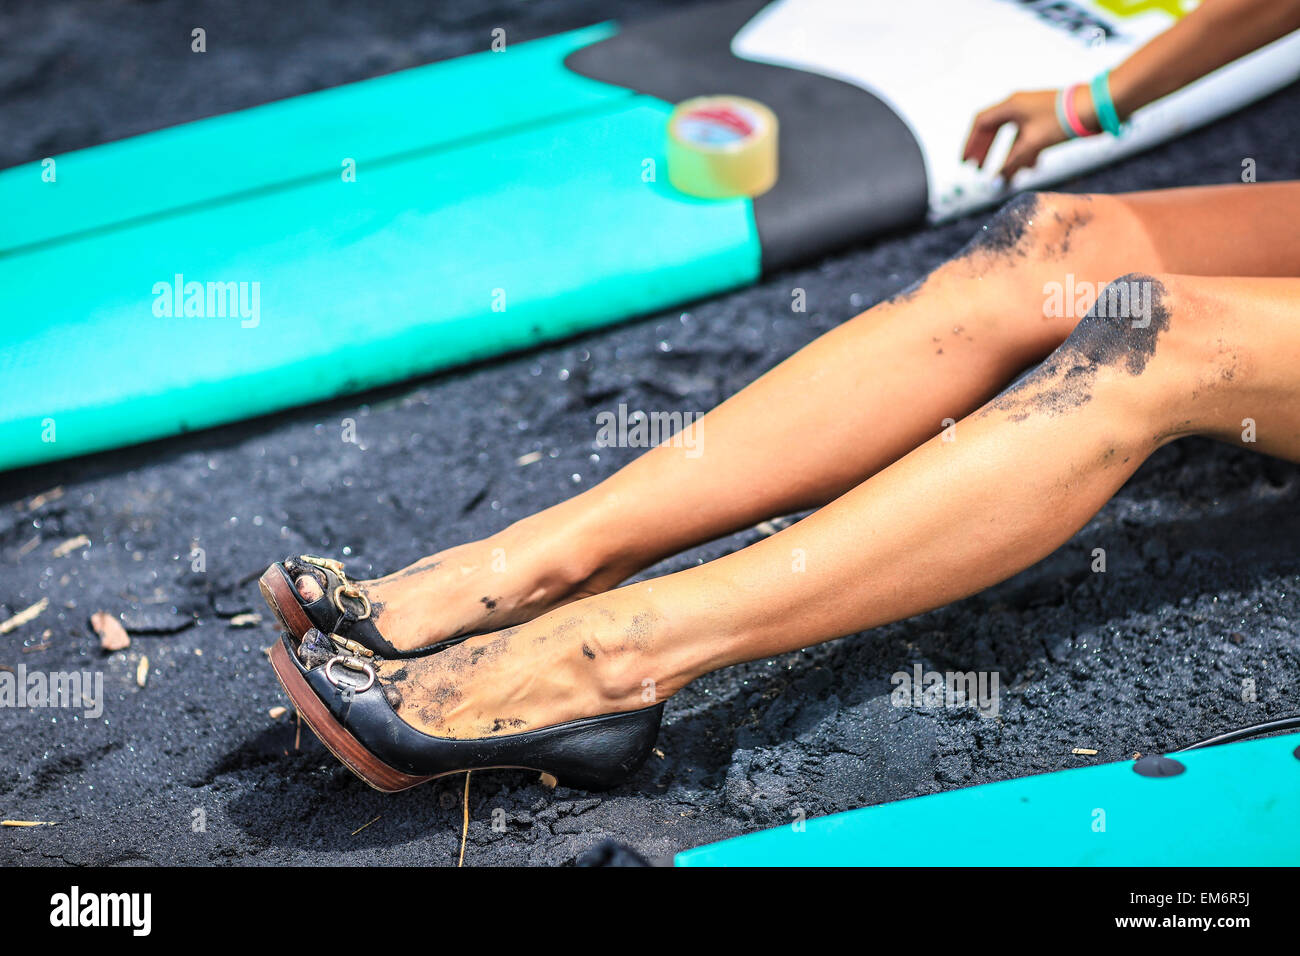 Surfer girls catch waves in high heels. - Stock Image